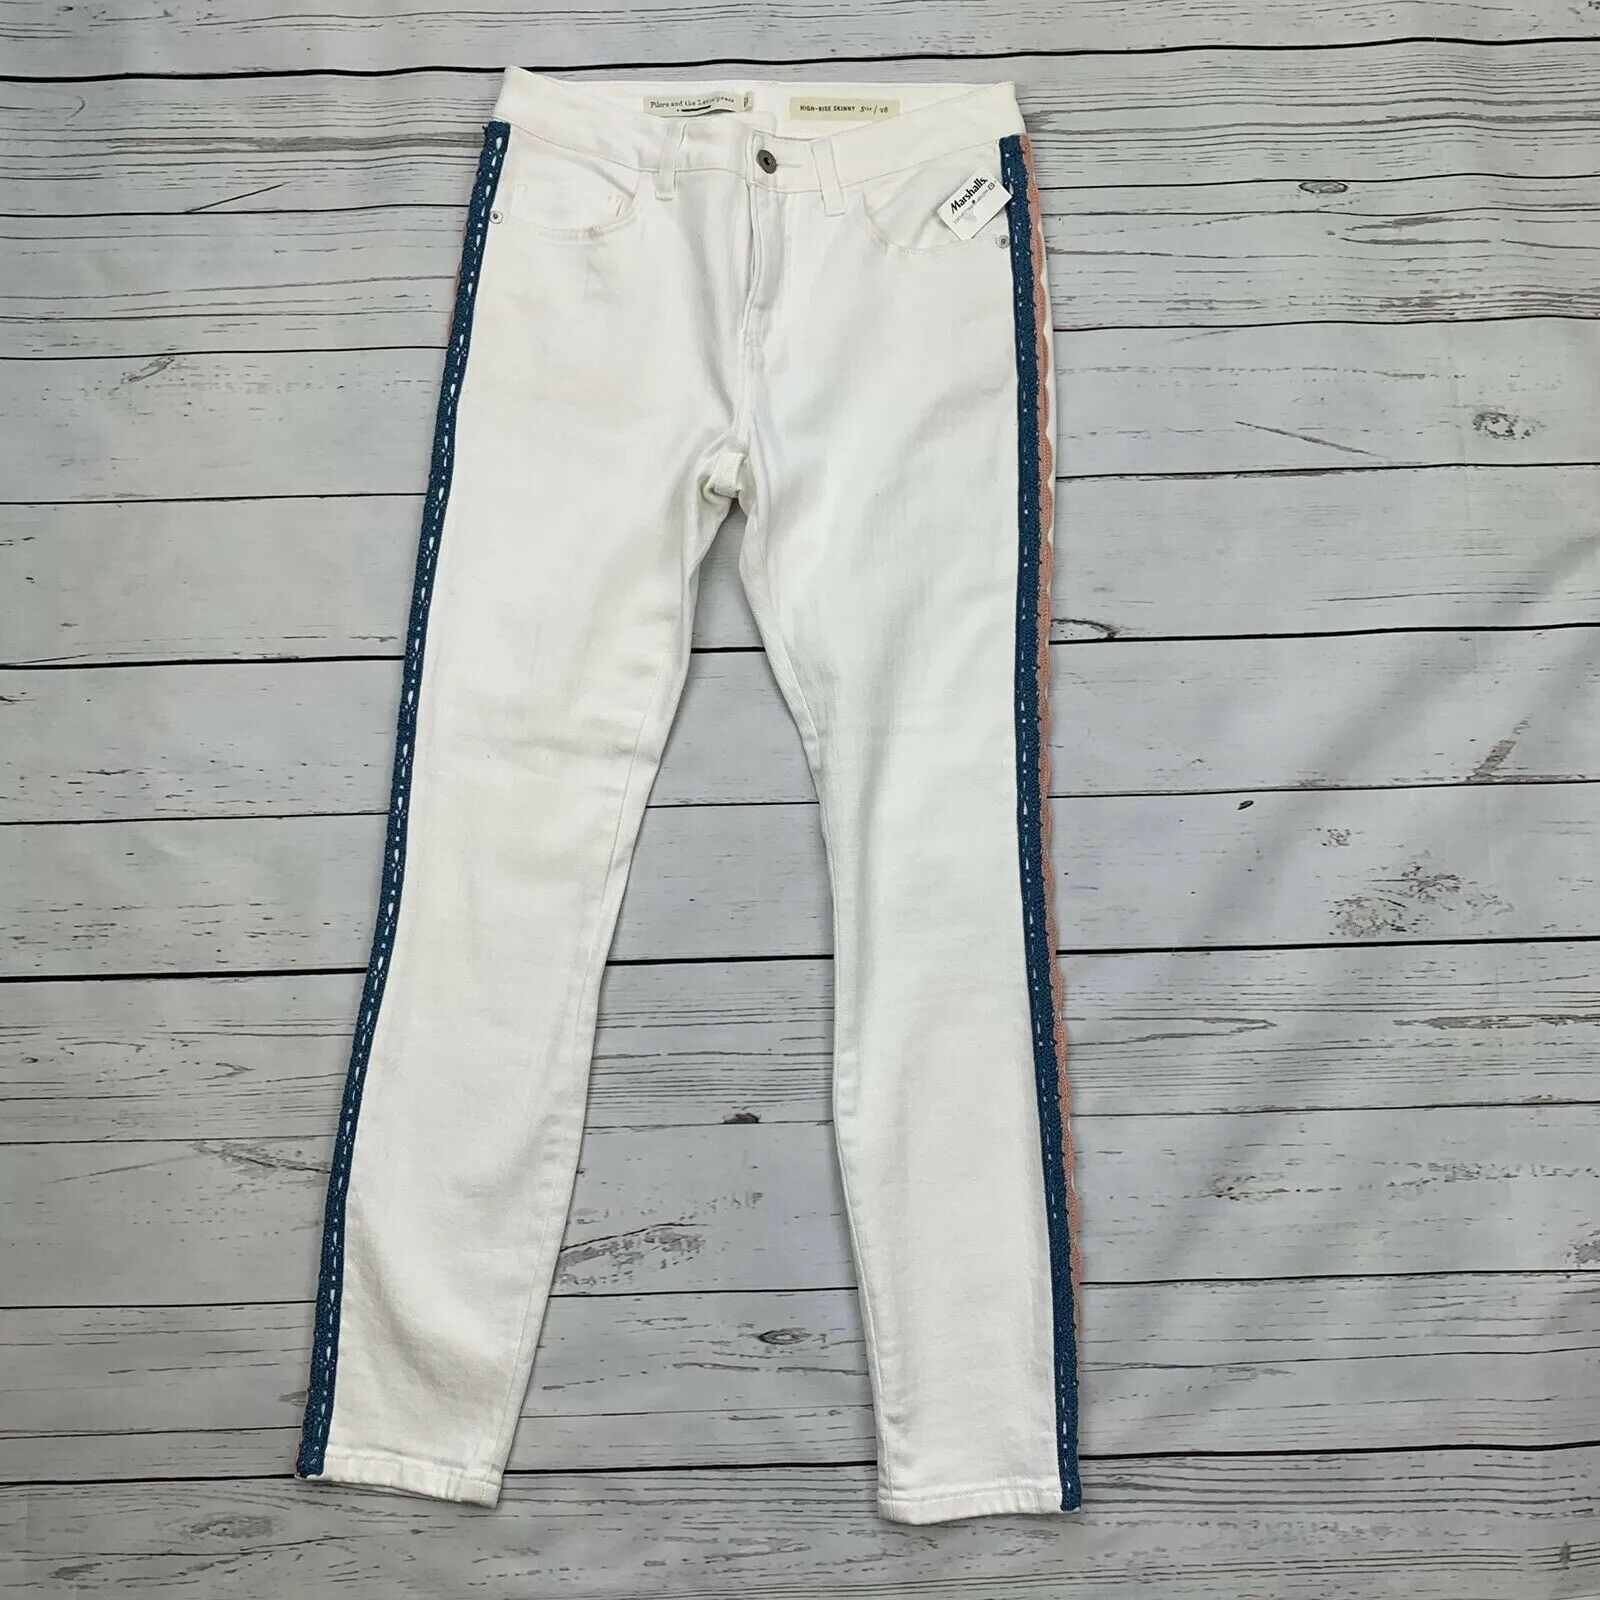 Pilcro and the Letterpress High Rise Skinny Jeans - Size 28 - White Crochet Trim